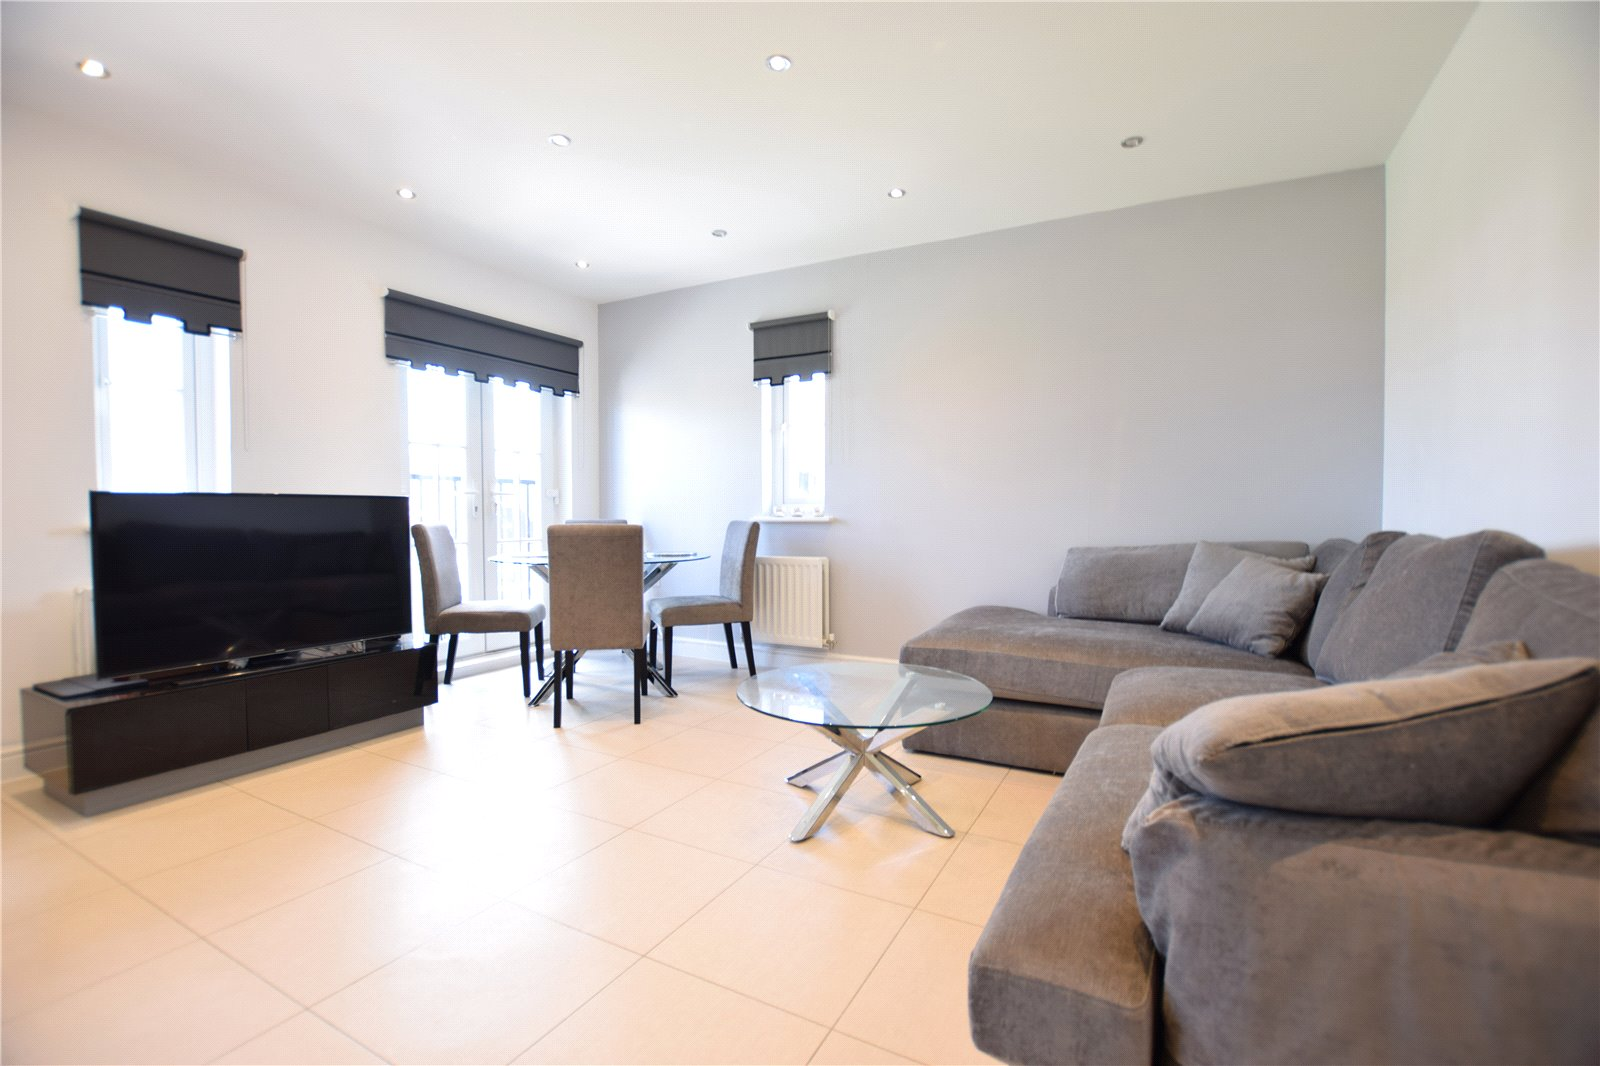 2 Bedrooms Apartment Flat for sale in Fulmar Crescent, Jennett's Park, Bracknell, Berkshire, RG12